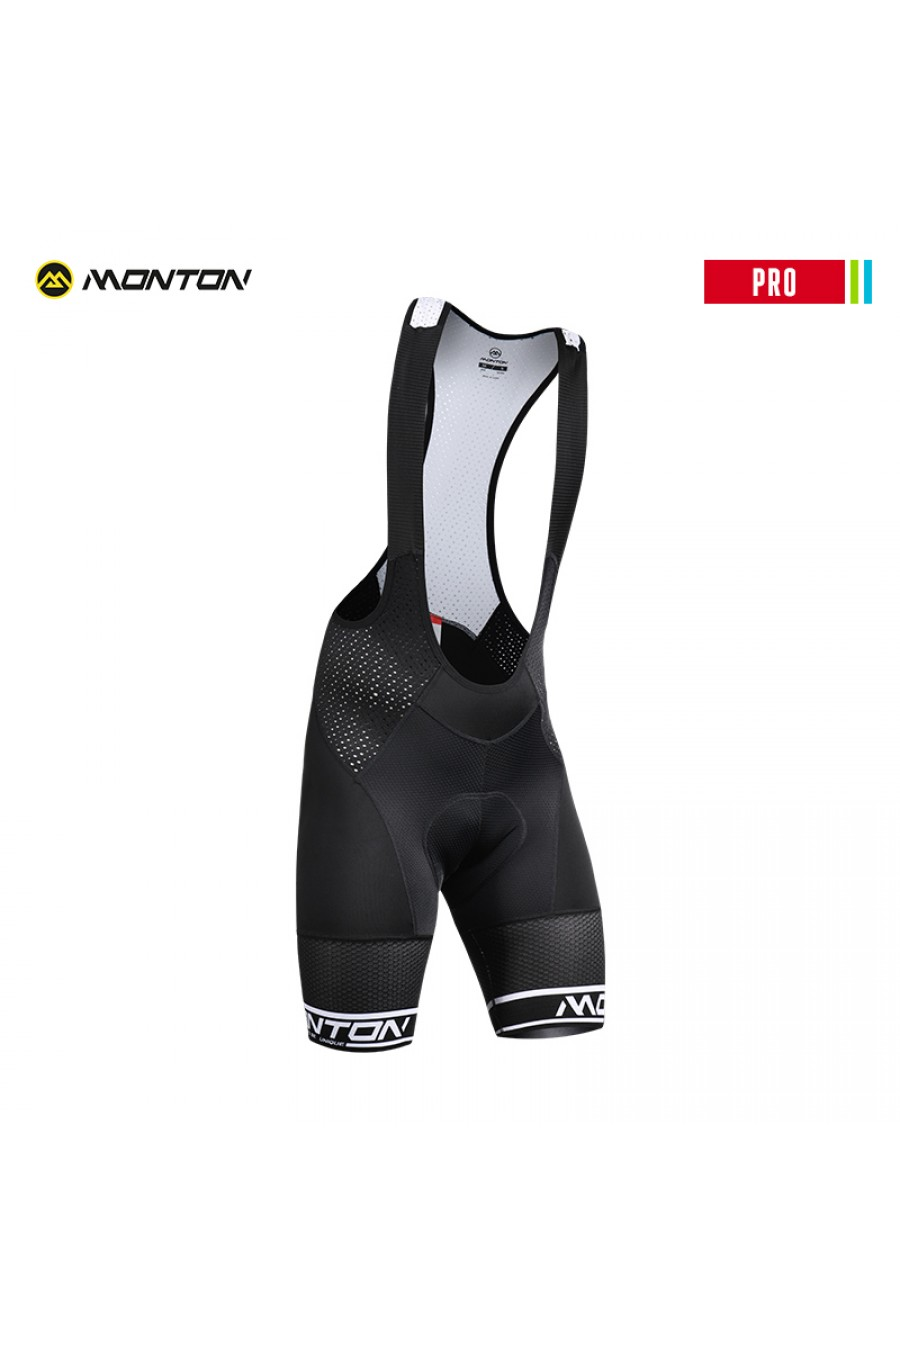 d806646d281 Buy Mens Best Cycling Bib Shorts for Long Rides with Italy Carbon ...